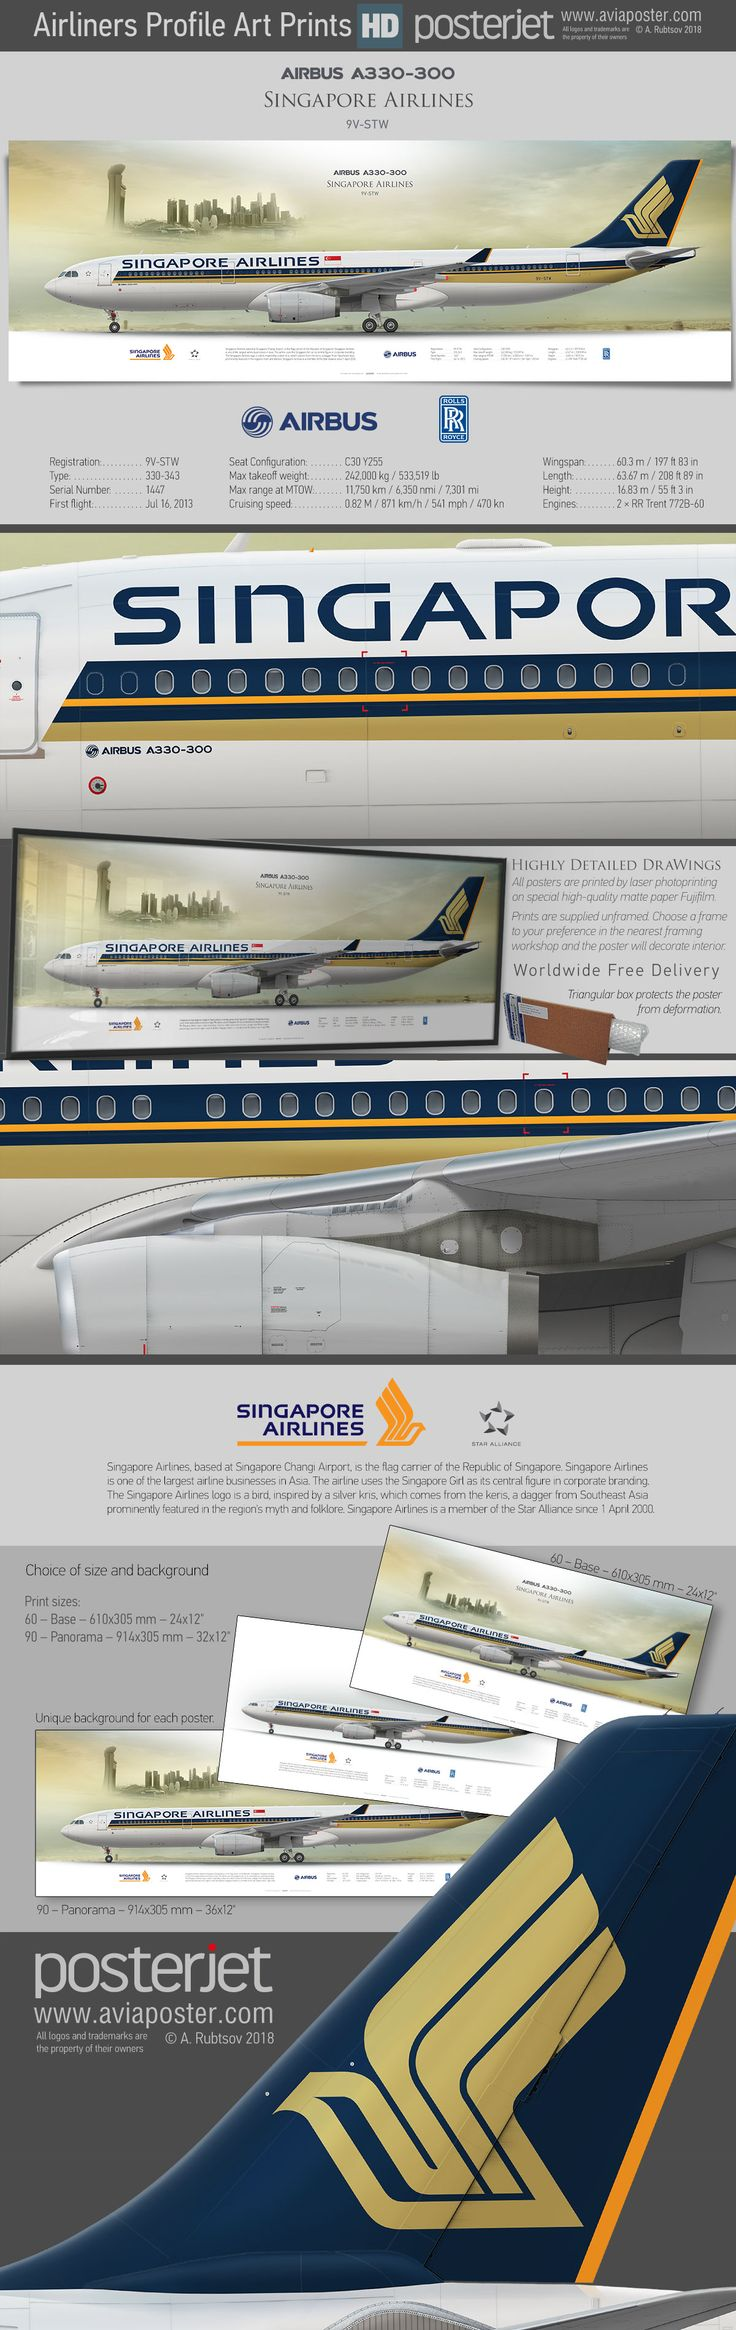 Airbus A330-300 Singapore Airlines 9V-STW